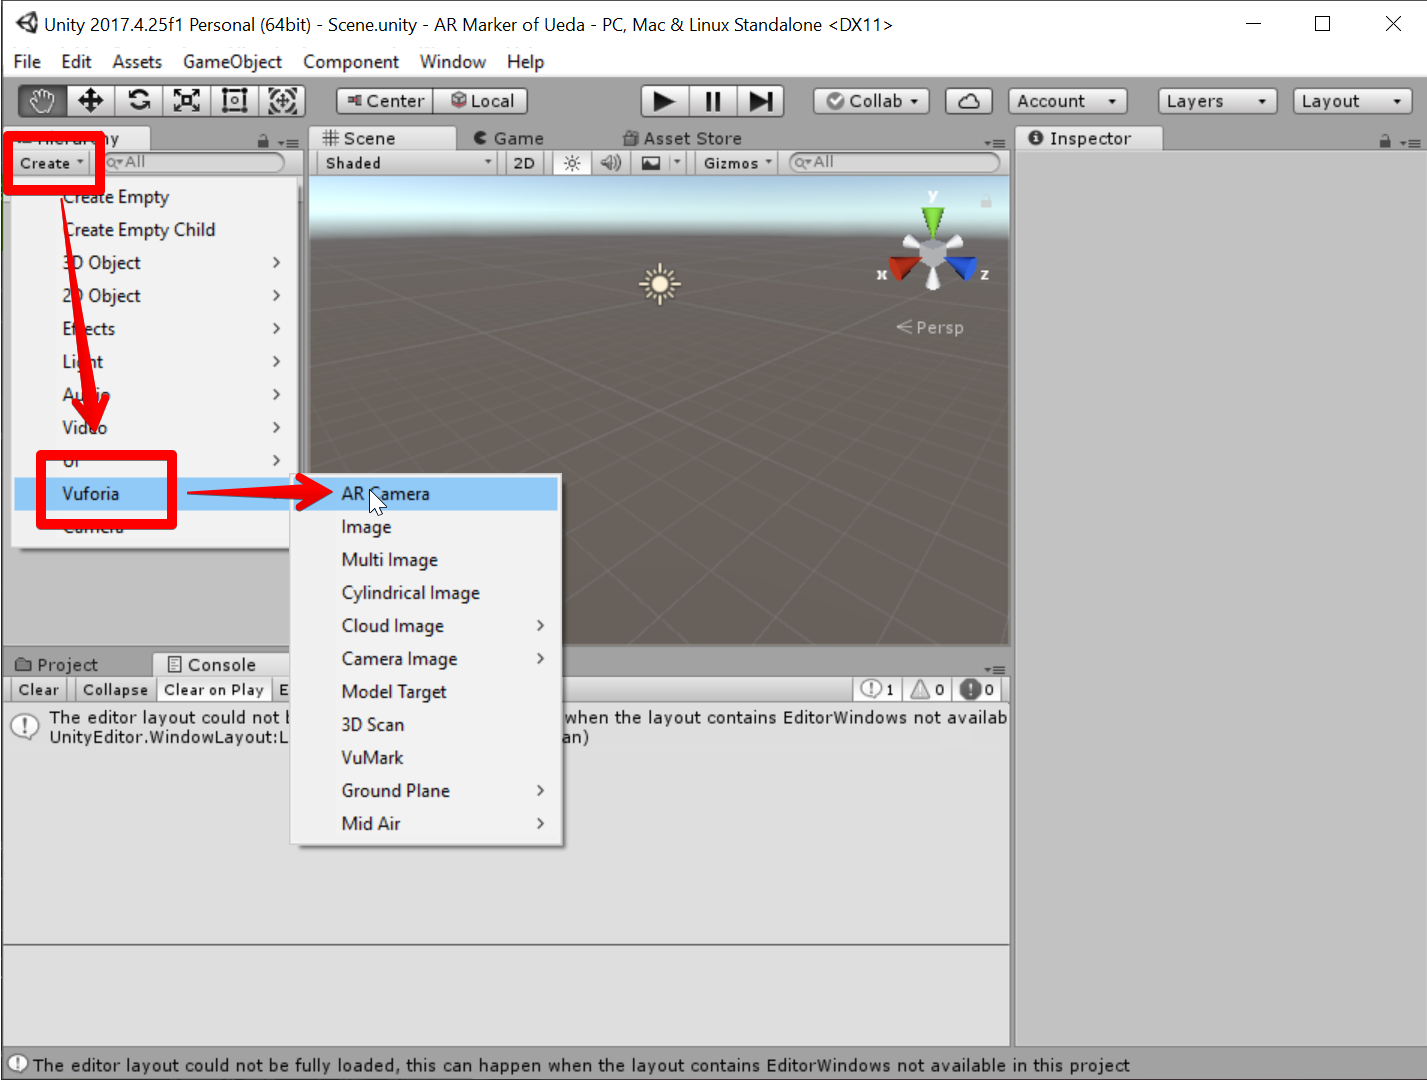 Unity 2017.4.25f1 Personal (64bit) - Scene.unity - AR Marker of Ueda - PC, Mac & Linux Standalone _DX11_ 2019-07-05 07.39.03.png